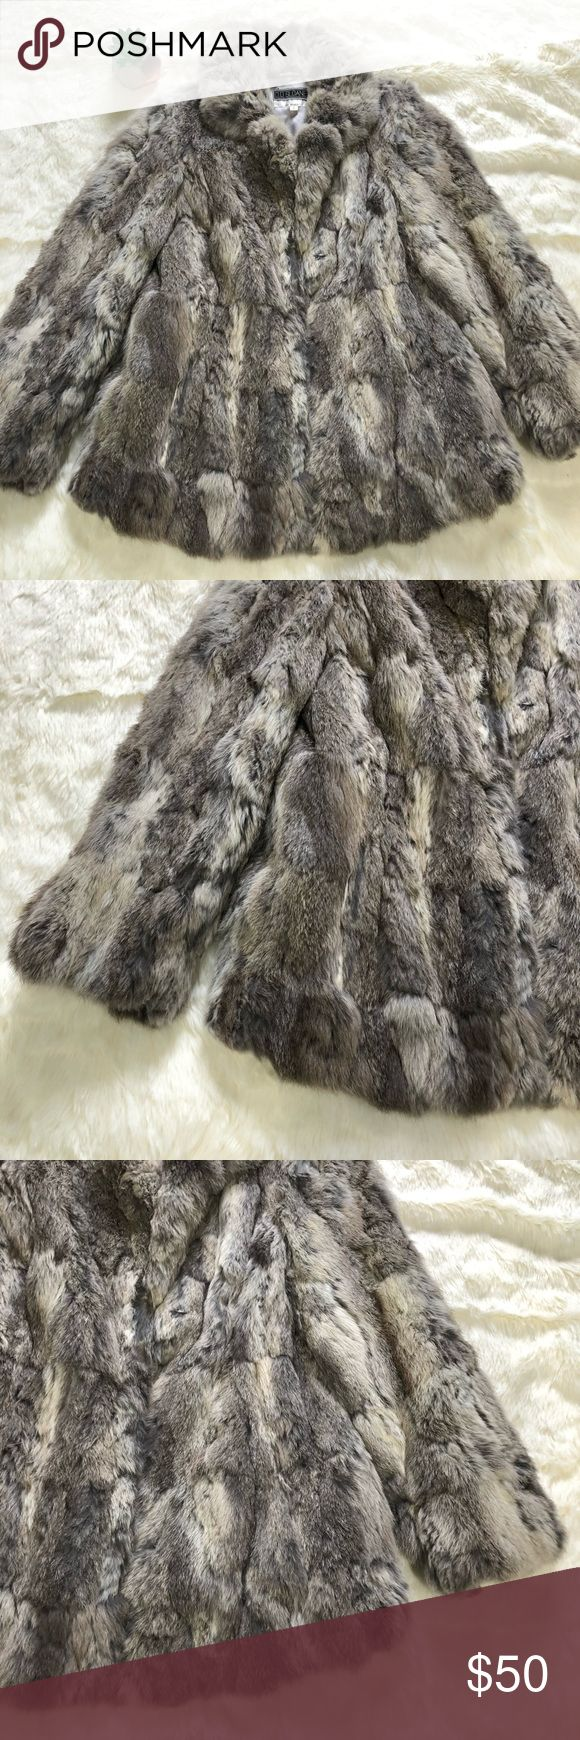 Vintage Rabbit Fur Coat Vintage Rabbit fur coat. Missing some hair on the back of the left sleeve (as pictured) and by the wrist as well. Size small D.D Sloan Jackets & Coats